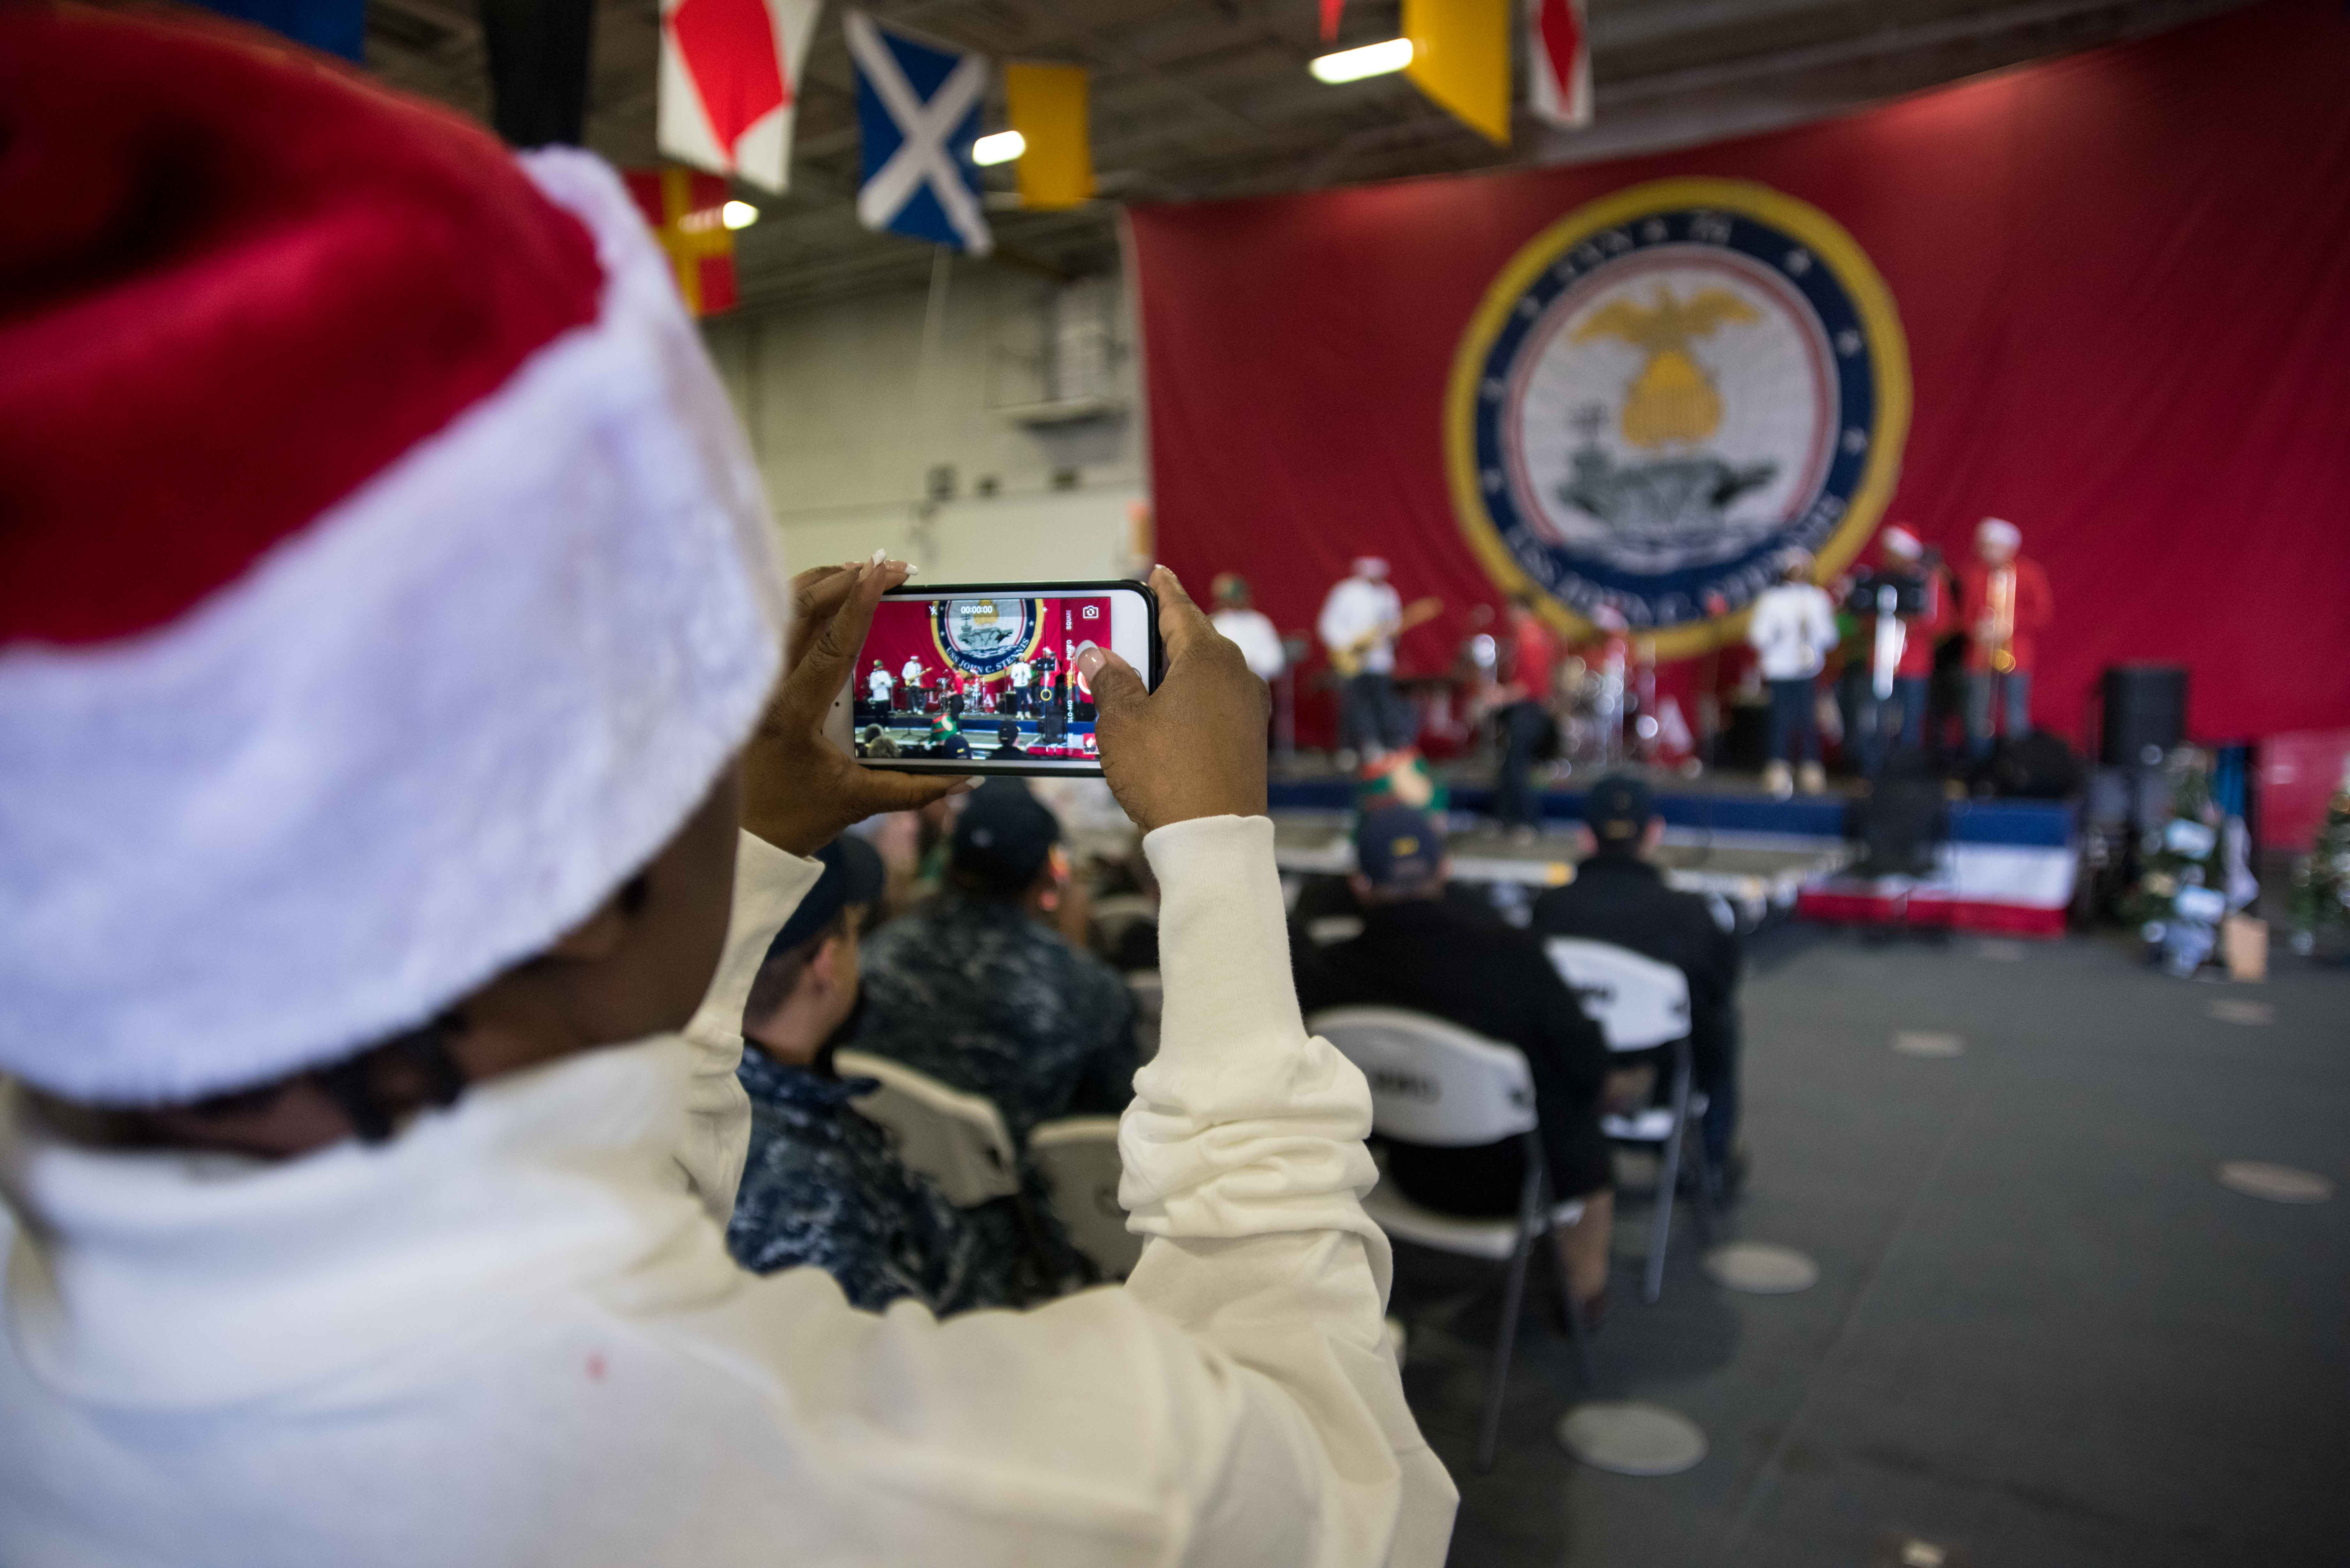 Sailors assigned to the aircraft carrier USS John C. Stennis participate in a holiday event held by the ship's crew in the hangar bay. U.S. Navy photo by Class William Ford